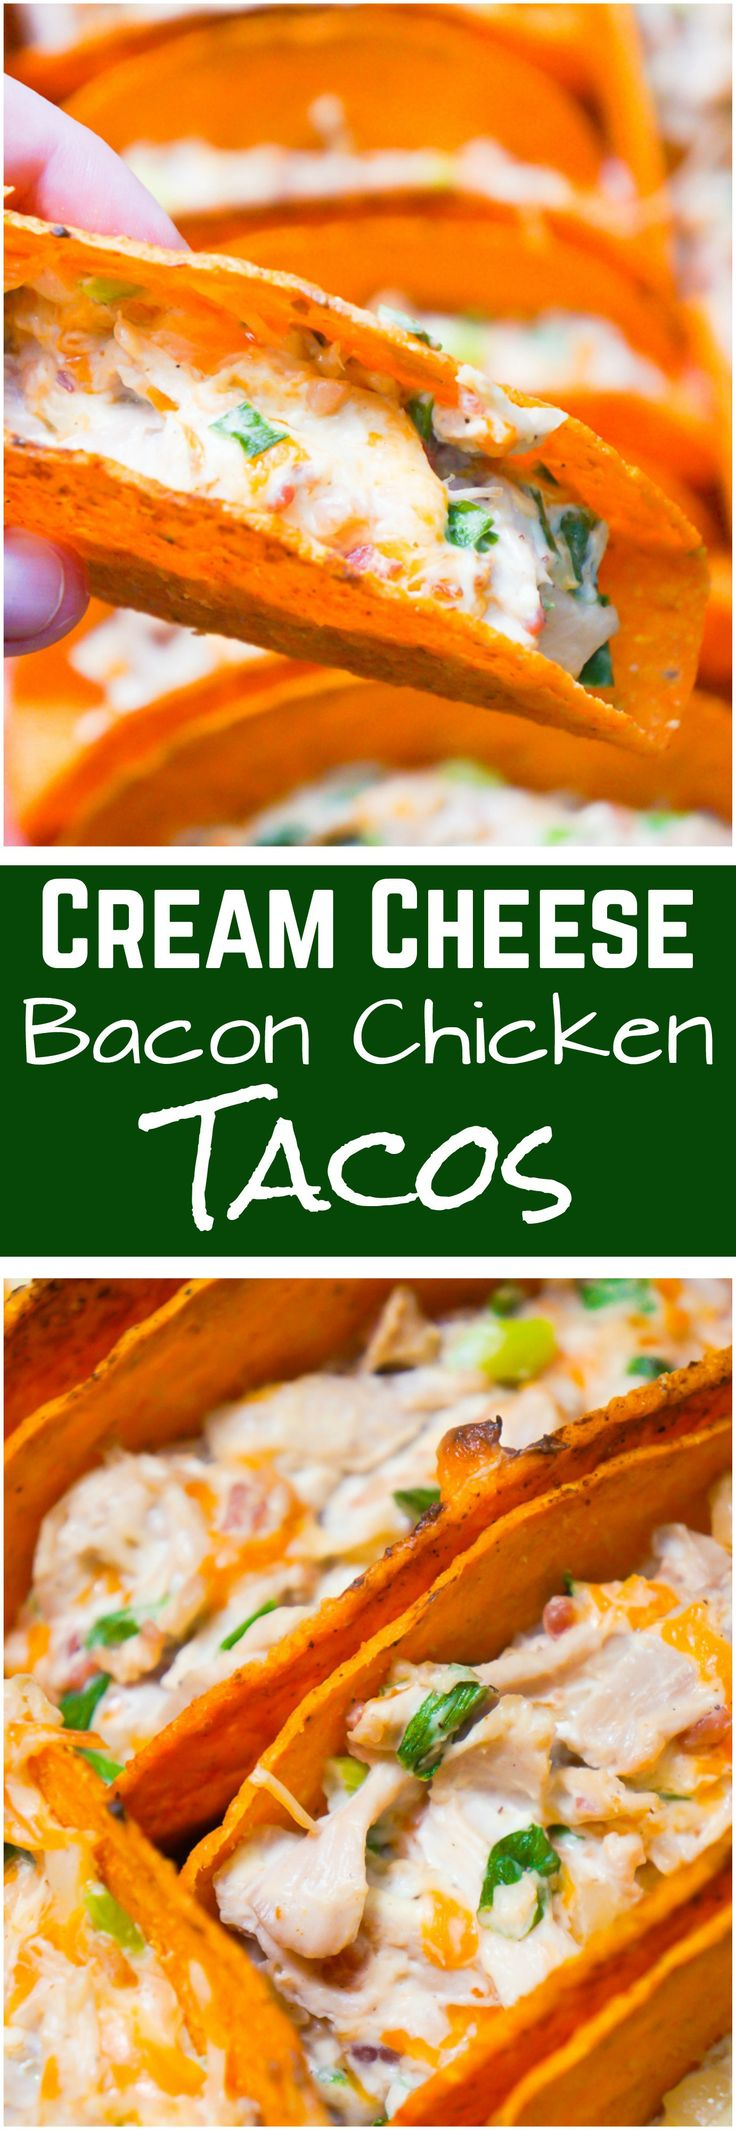 Cream Cheese Bacon Chicken Tacos are an easy dinner recipe. Stand and Stuff Taco Shells are loaded with shredded chicken, cream cheese, real bacon bits onions and cheddar cheese. These chicken tacos would also be a great party food.